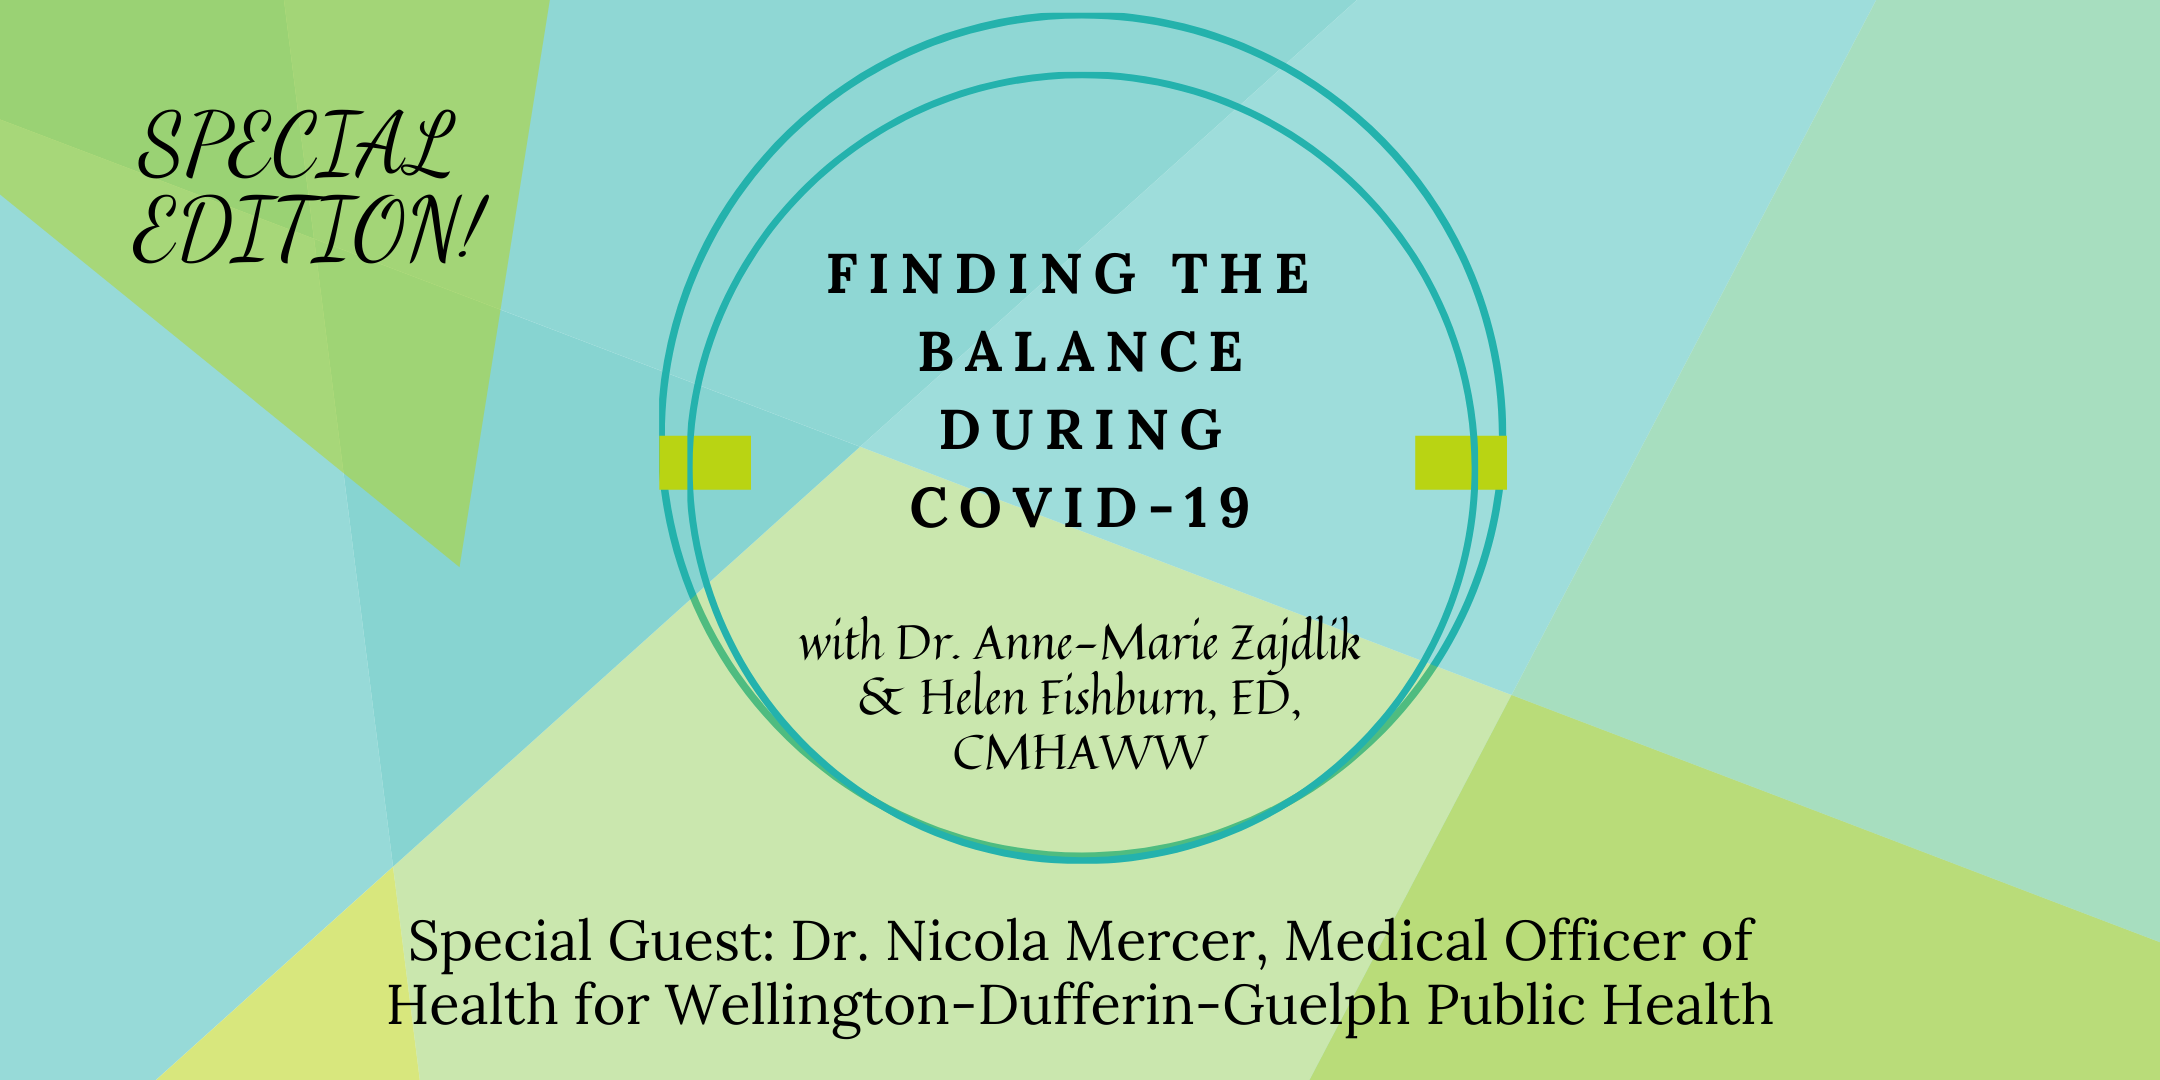 "Image with teal and green background. Text on image reads, ""Finding the balance during Covid-19, with Dr. Anne-Marie Zajdlik and Helen Fishburn, ED, CMHAWW. Special Guest: Dr. Nicola Mercer, Medical Officer of Health for Wellington-Dufferin-Guelph Public Health"".""."